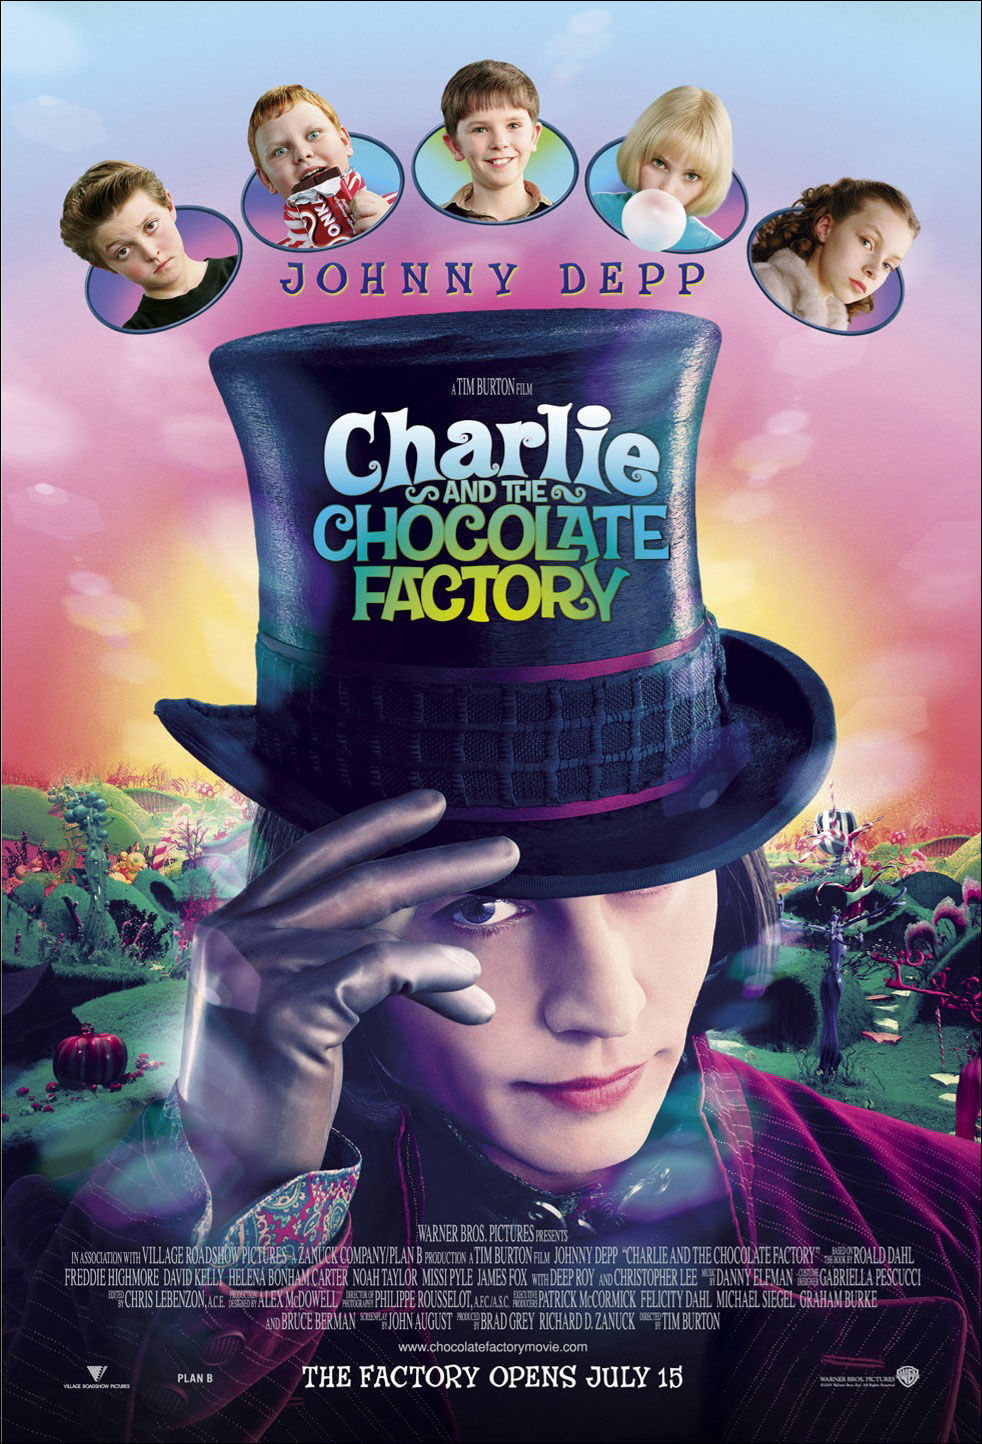 the charlie and the chocolate factory movie poster meets the    Charlie And The Chocolate Factory Movie Poster